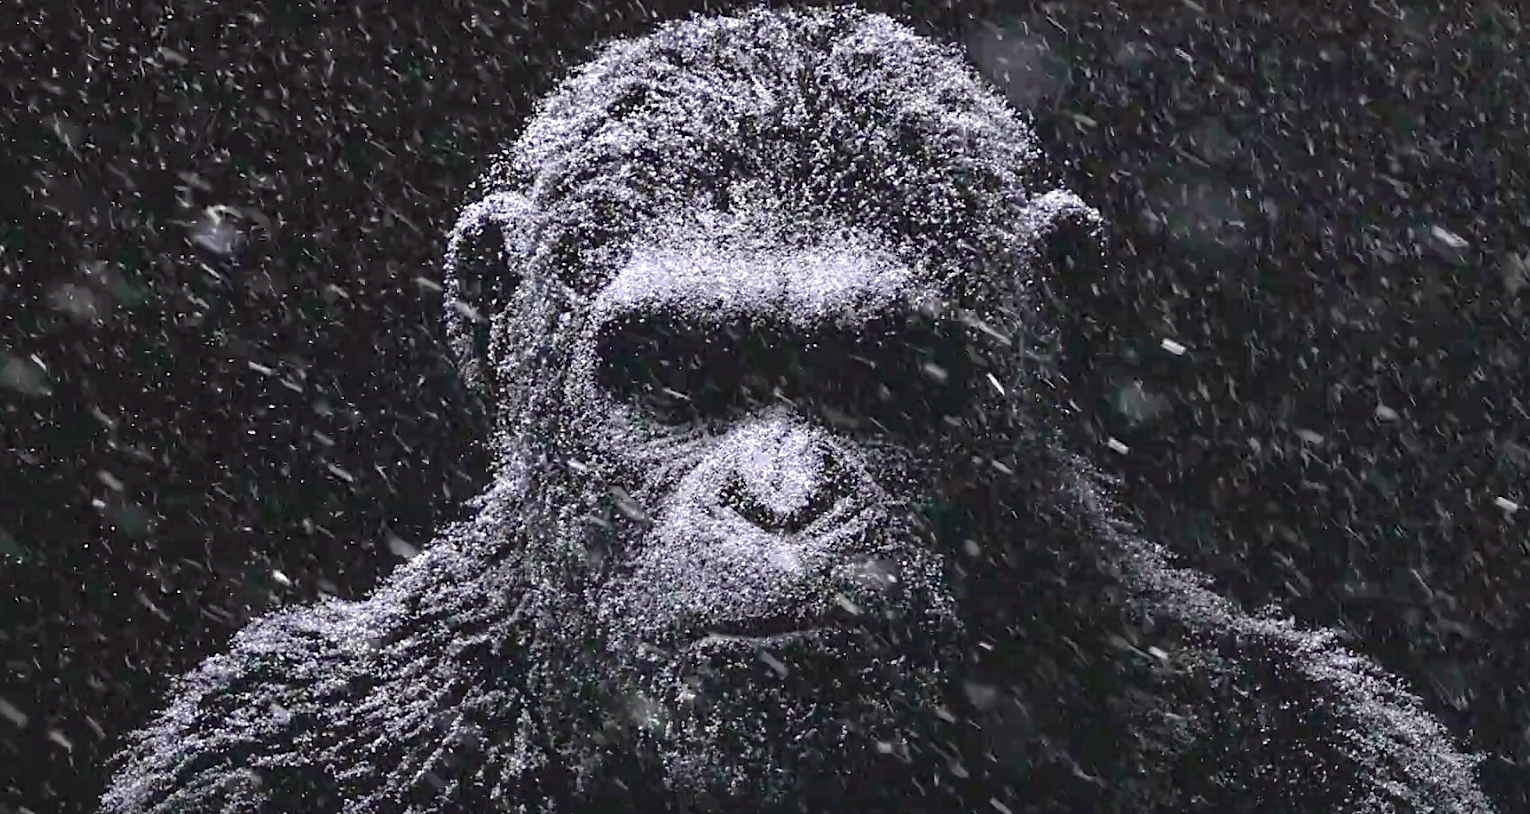 War For The Planet of the Apes (2016), Andy Serkis